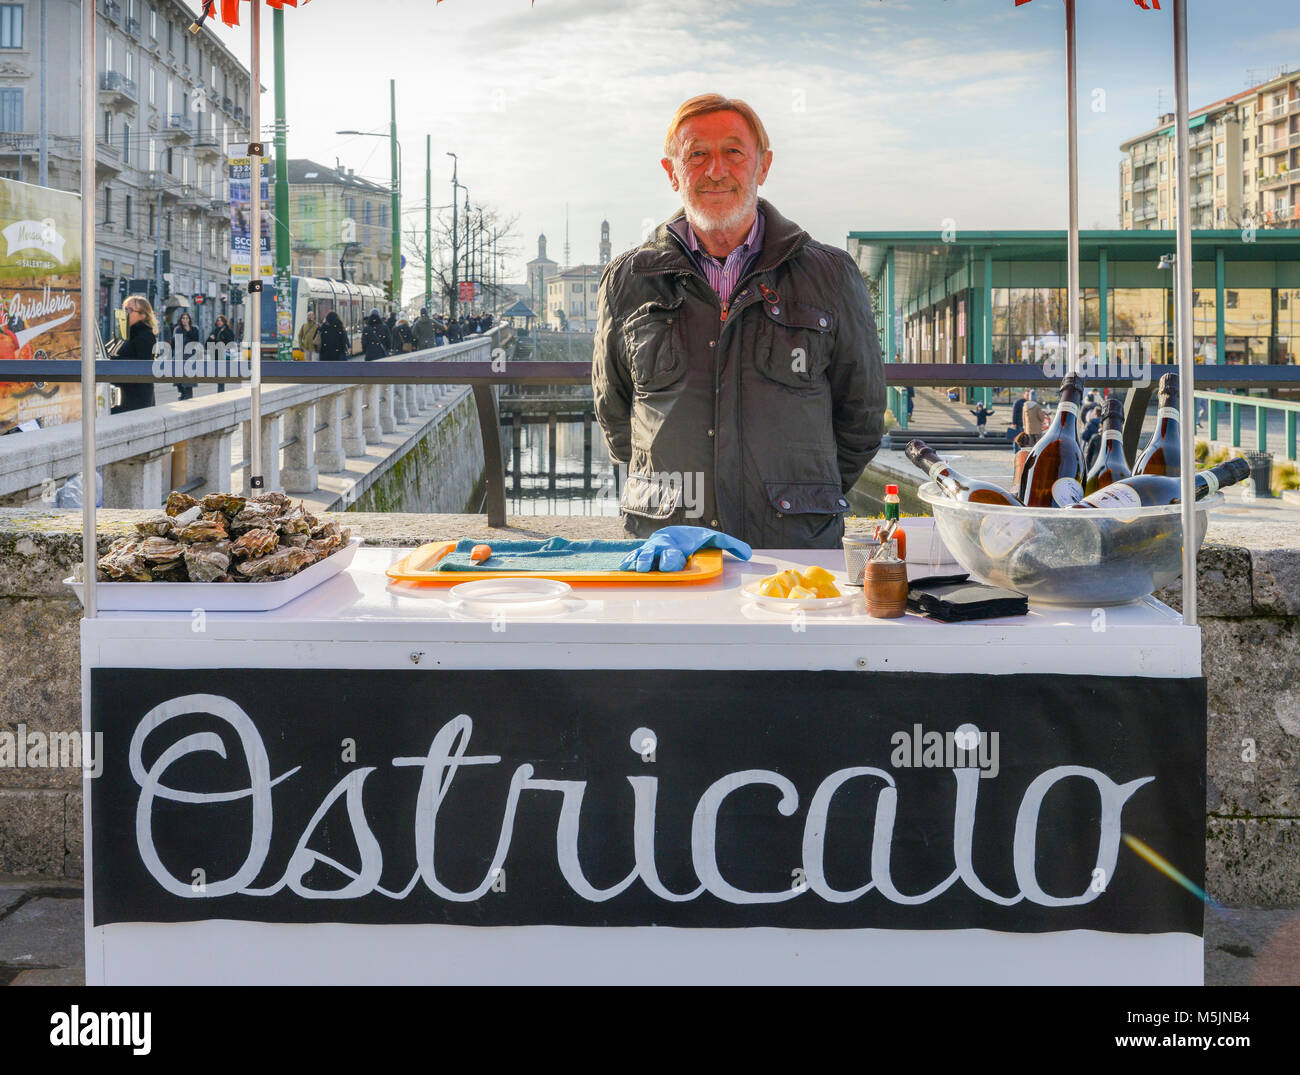 Milan, Italy - Feb 24, 2018: Fresh oysters for sale in Darsena district of Milan, Italy. Ostriciao is Italian for - Stock Image